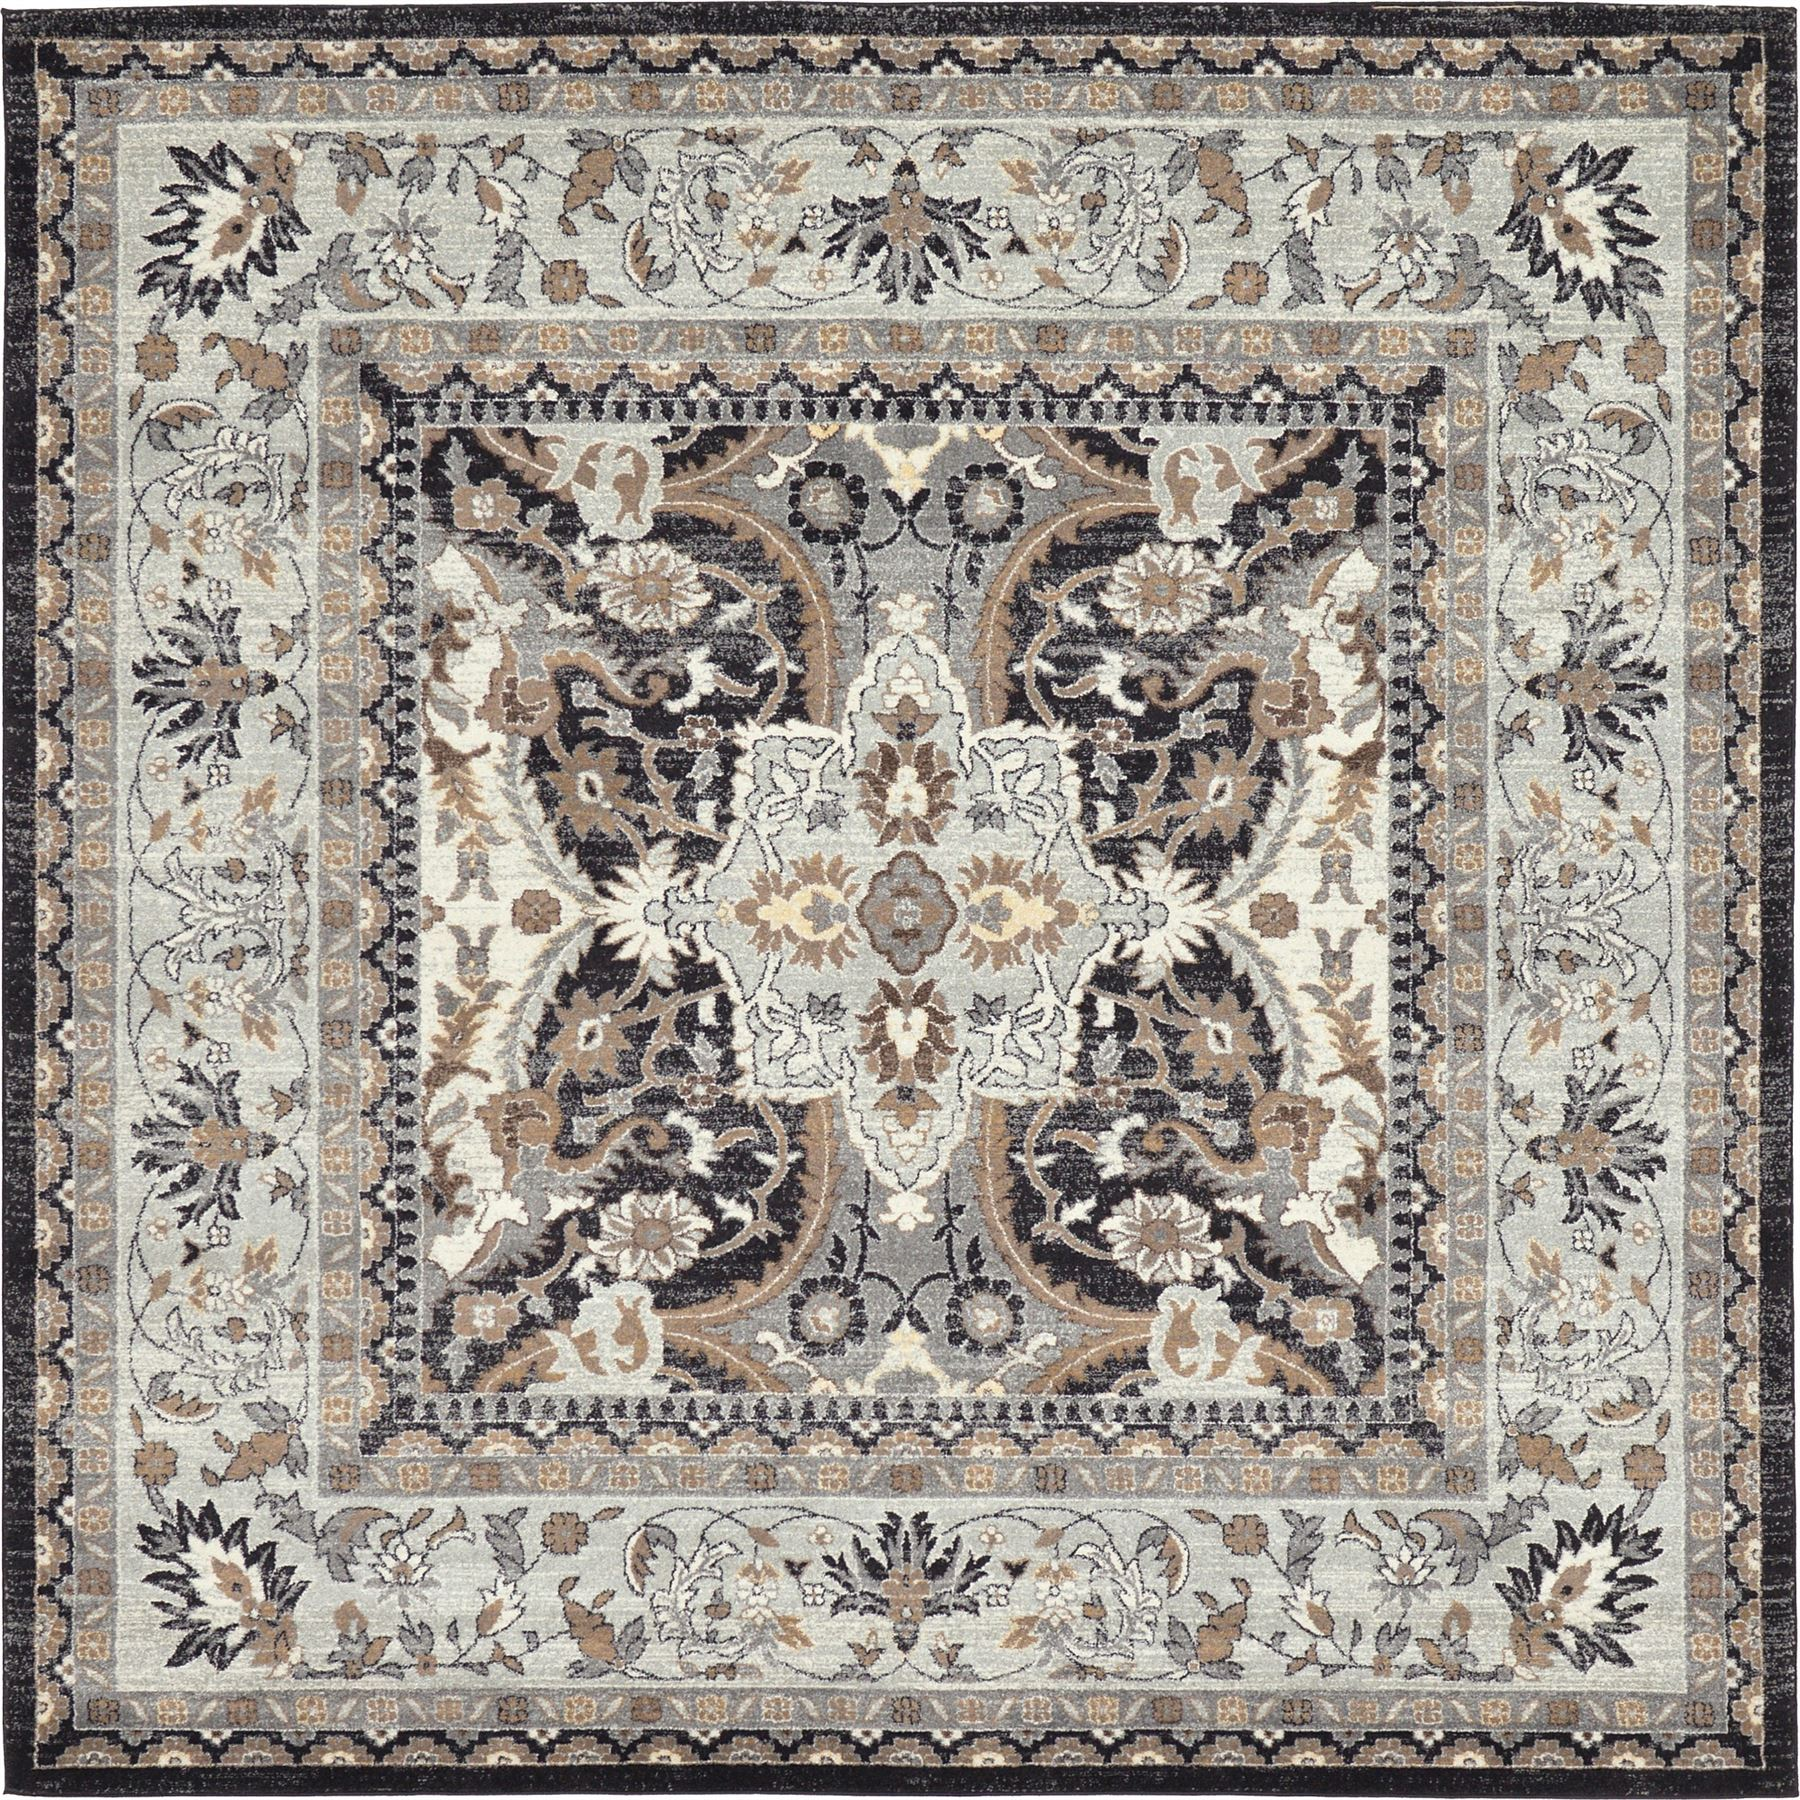 Modern Looking Rug: Oriental Rugs Modern Carpets Area Rug TRaditional Style